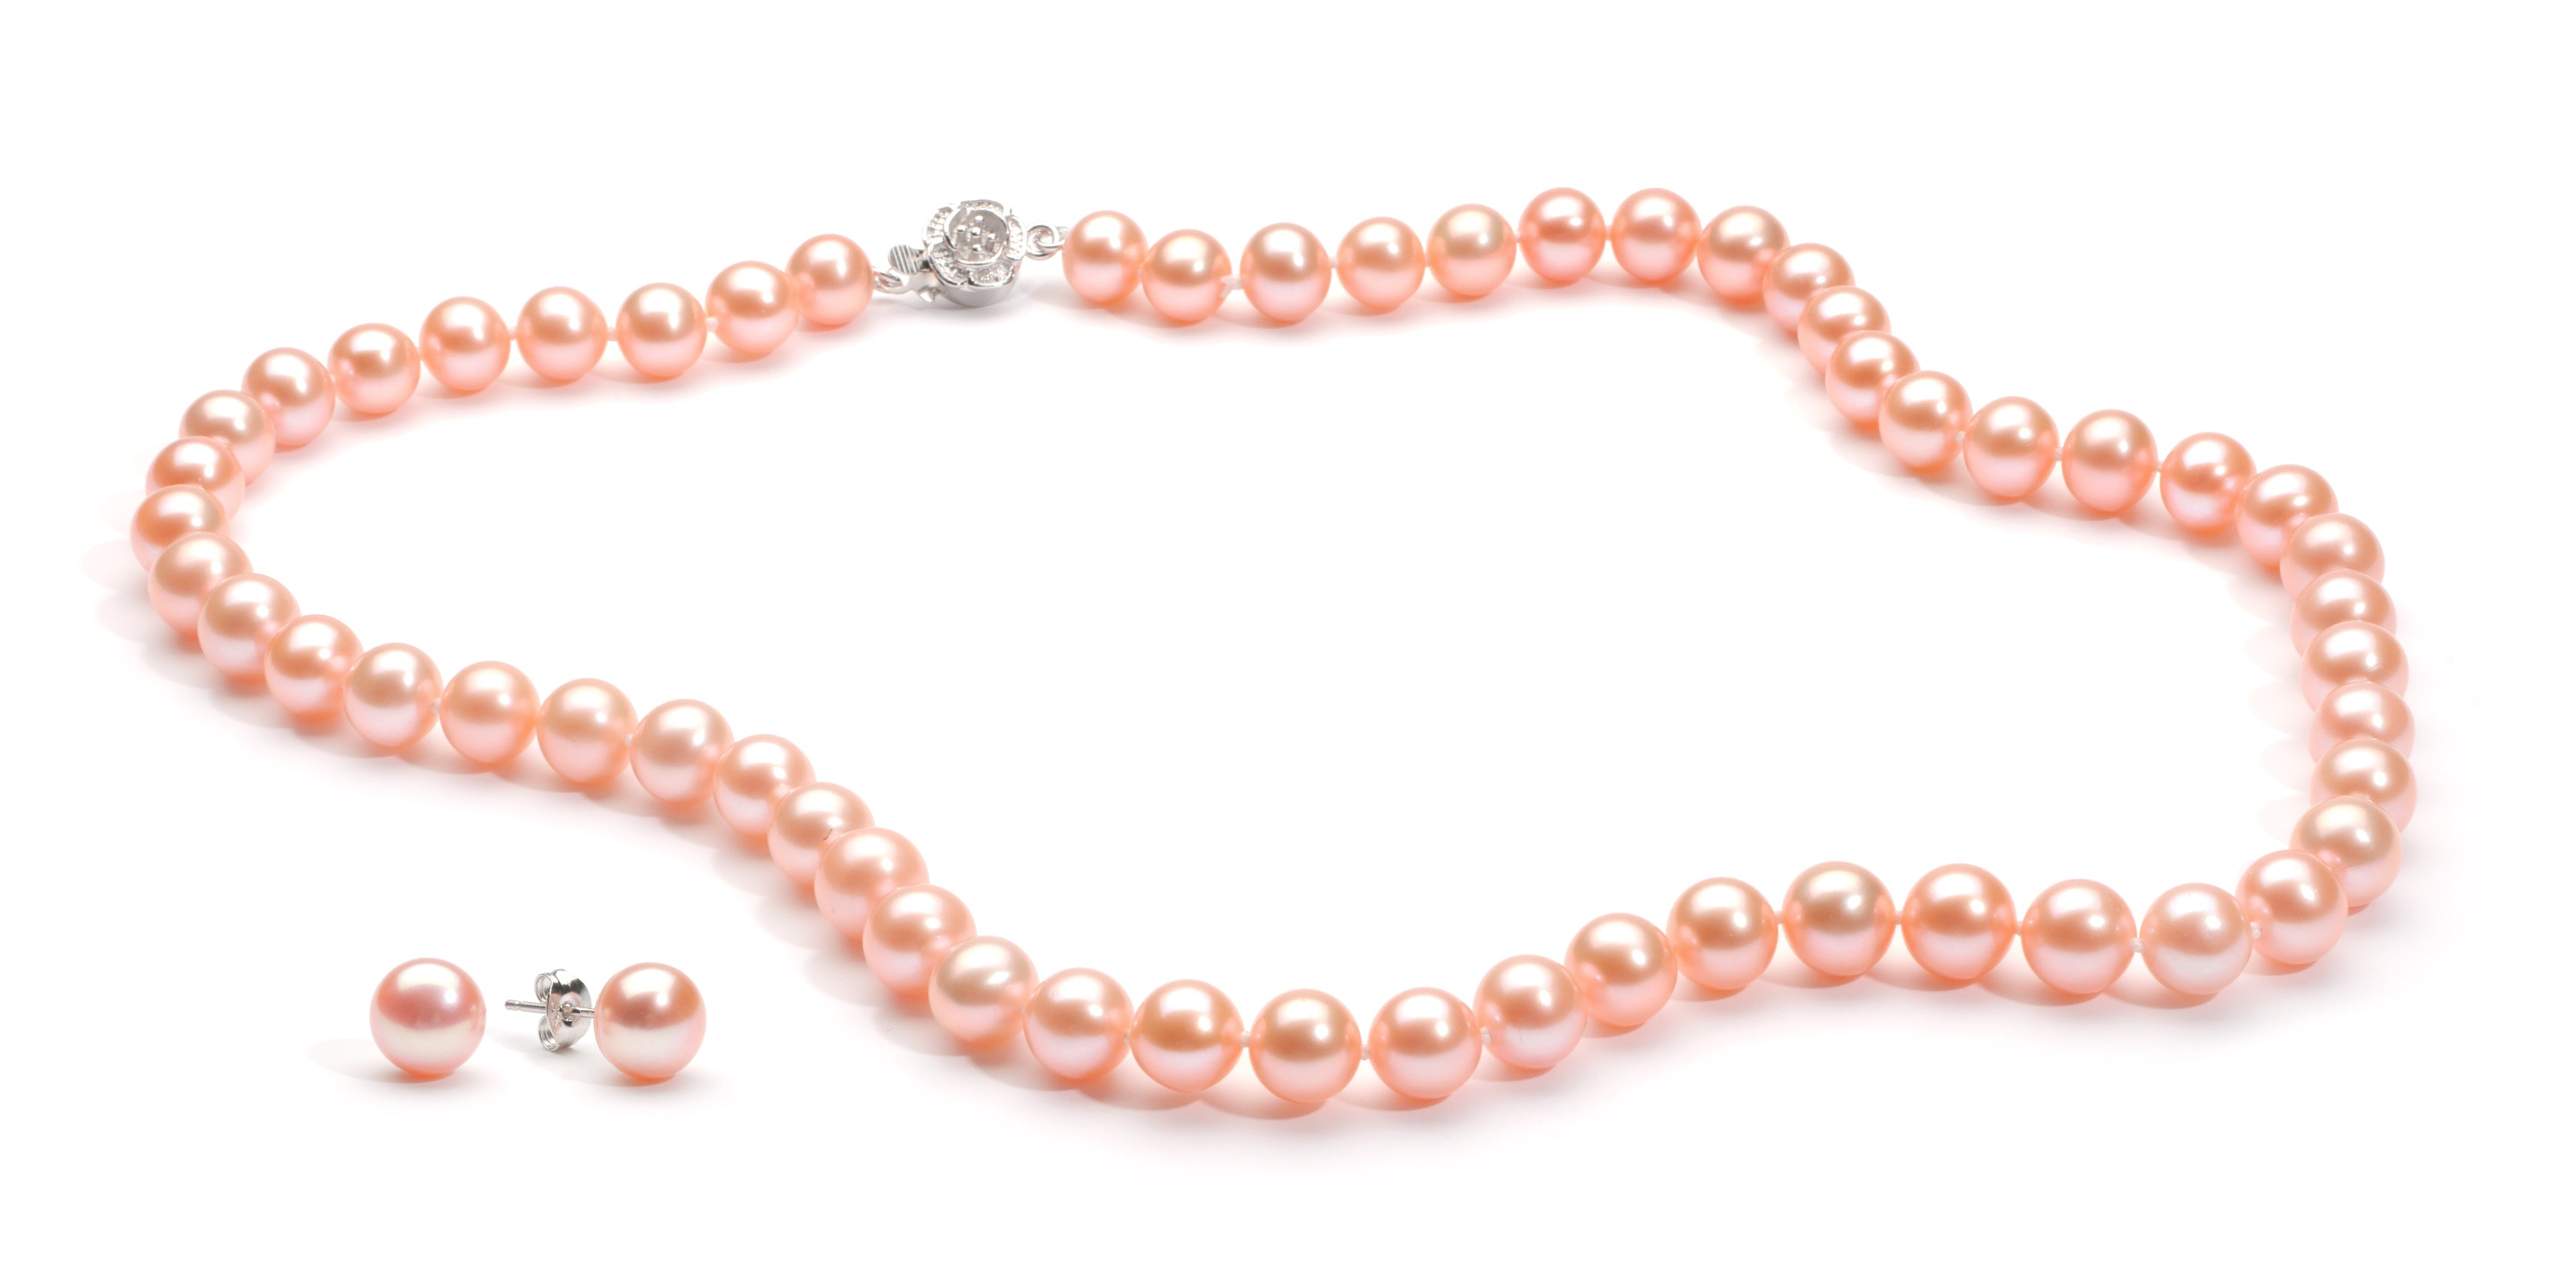 Necklace/Earrings Set 8.0-9.0 mm Pink Freshwater Pearls